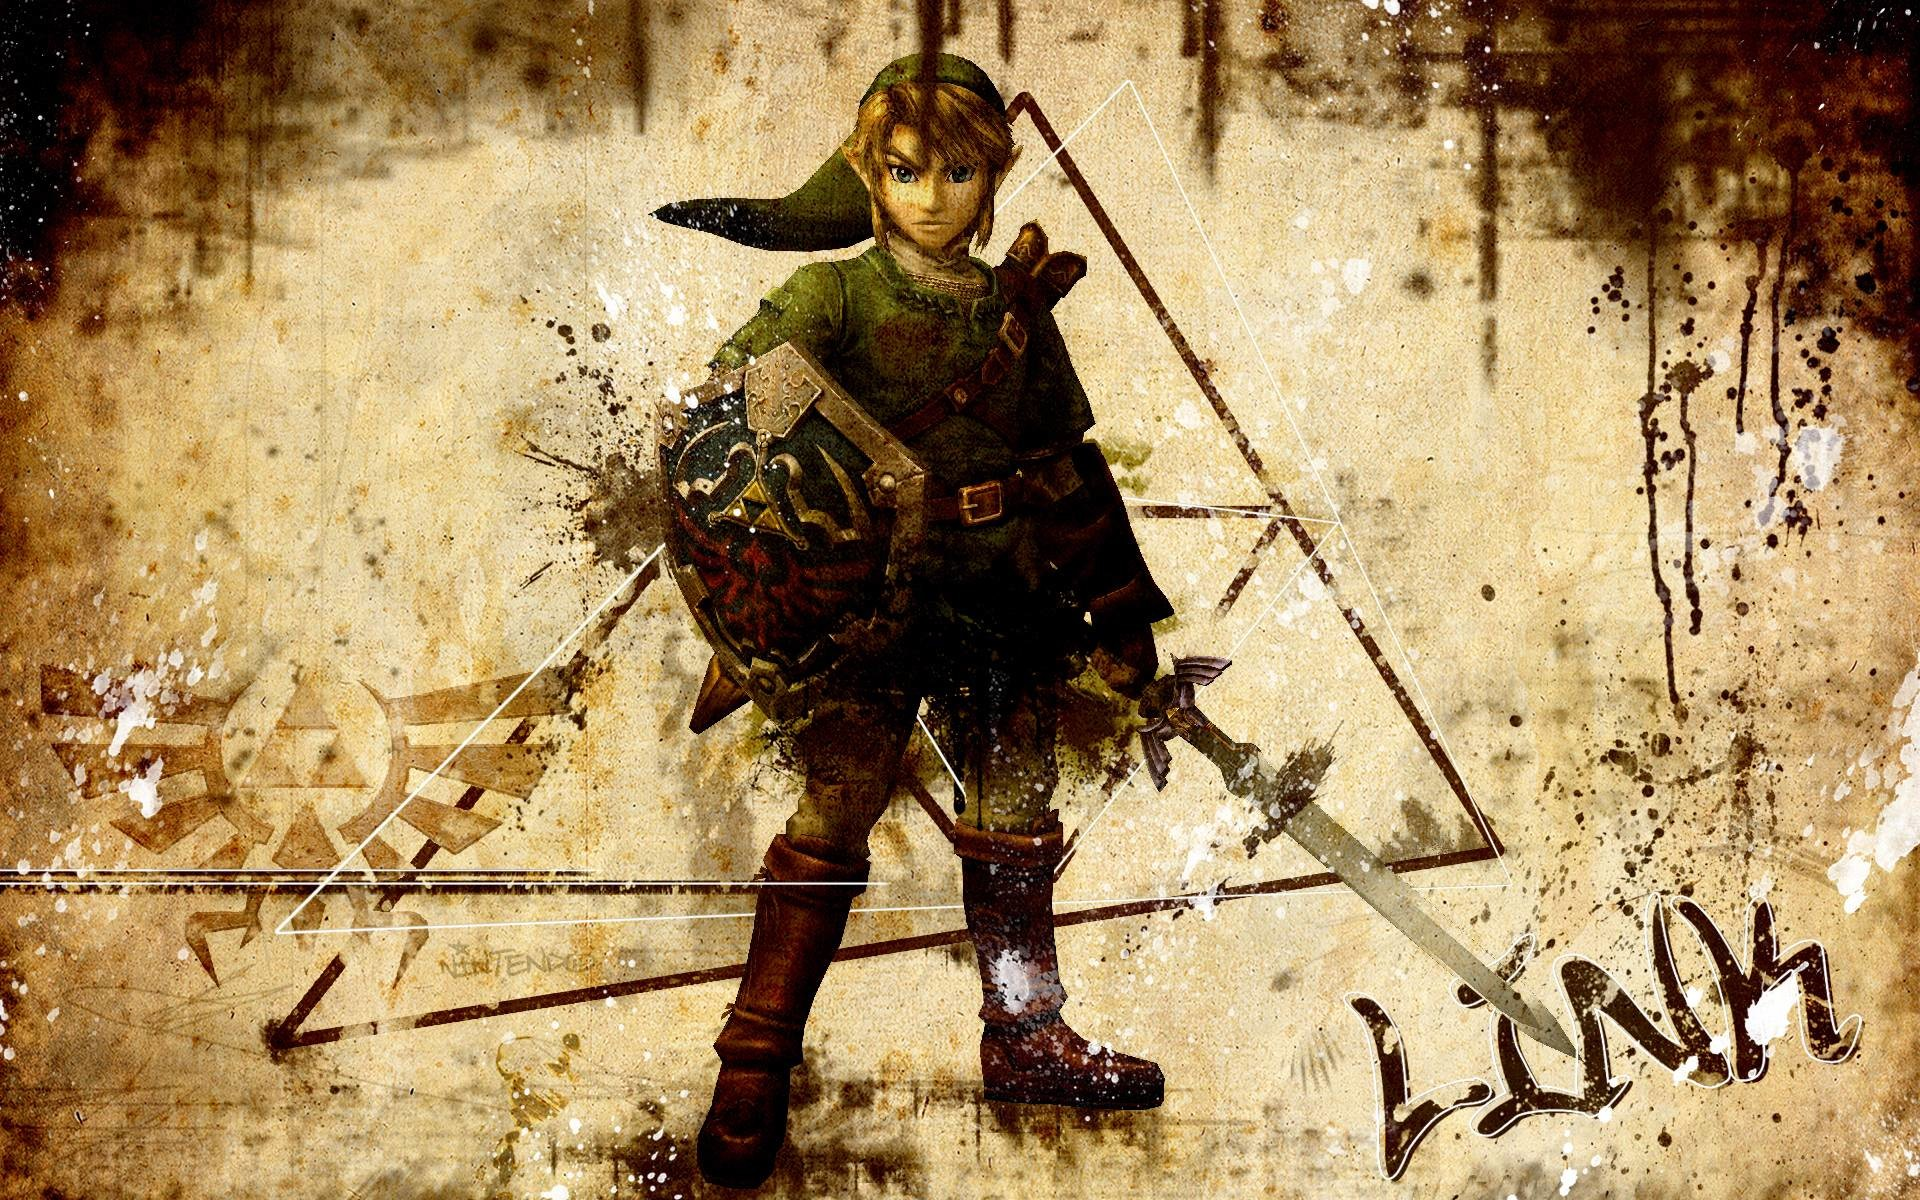 1920x1200 Link - The Legend of Zelda Wallpaper (2833139) - Fanpop